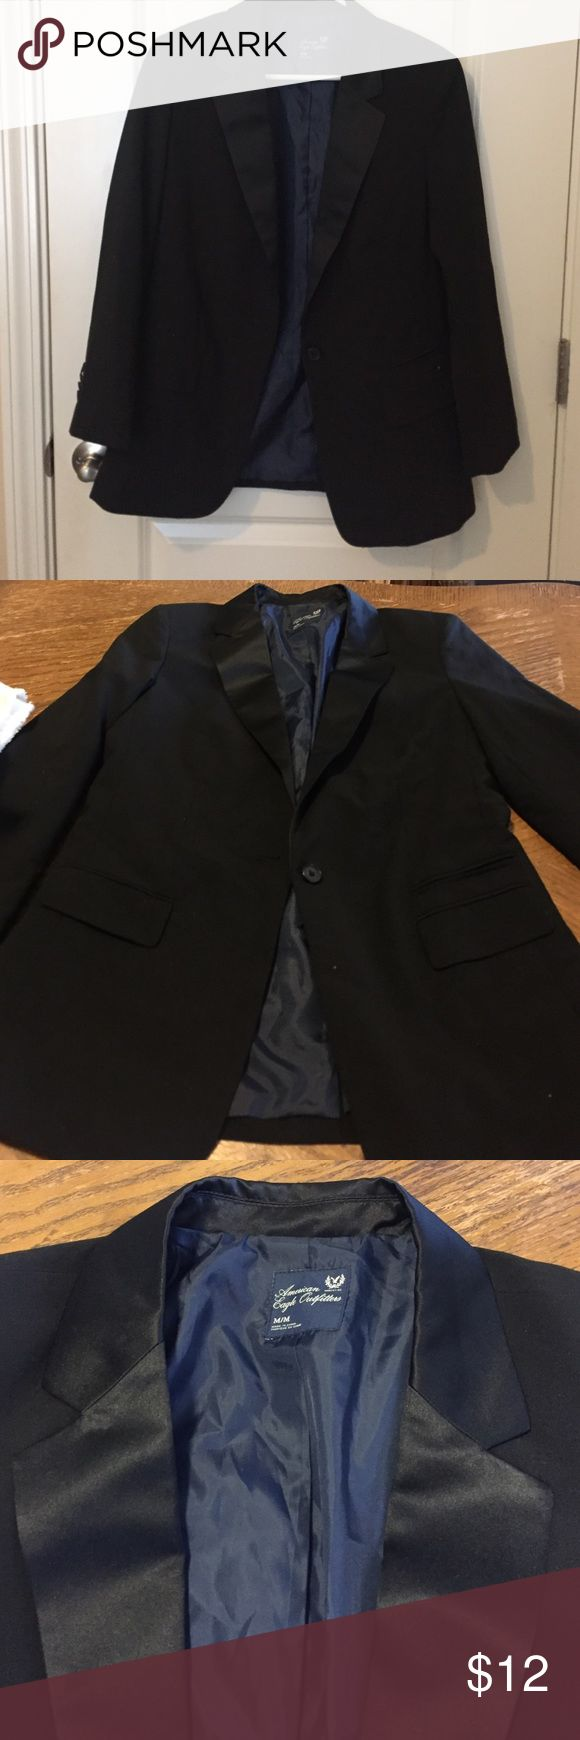 American Eagle Outfitters black blazer size M American Eagle Outfitters women's 3/4 sleeve blazer. Color: black with satin collar. Size: M. One loose button but that can be fixed. Other than that in great condition!! Only used 2-3 times. American Eagle Outfitters Jackets & Coats Blazers